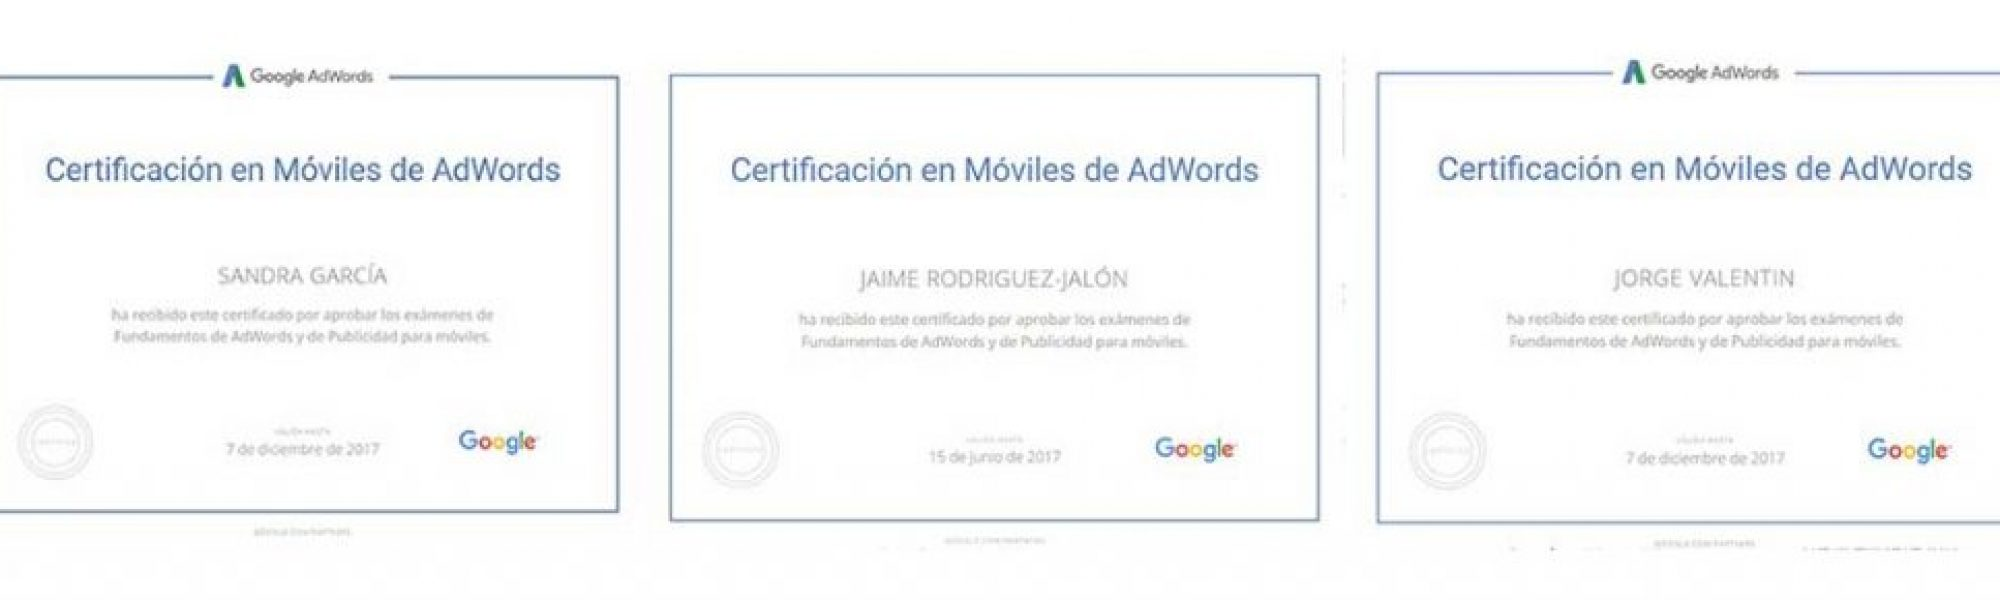 https://jalonimagen.com/wp-content/uploads/2019/10/agencia-marketing-digital-nuevo-equipo-certificados-google-adwords-2000x600.jpg